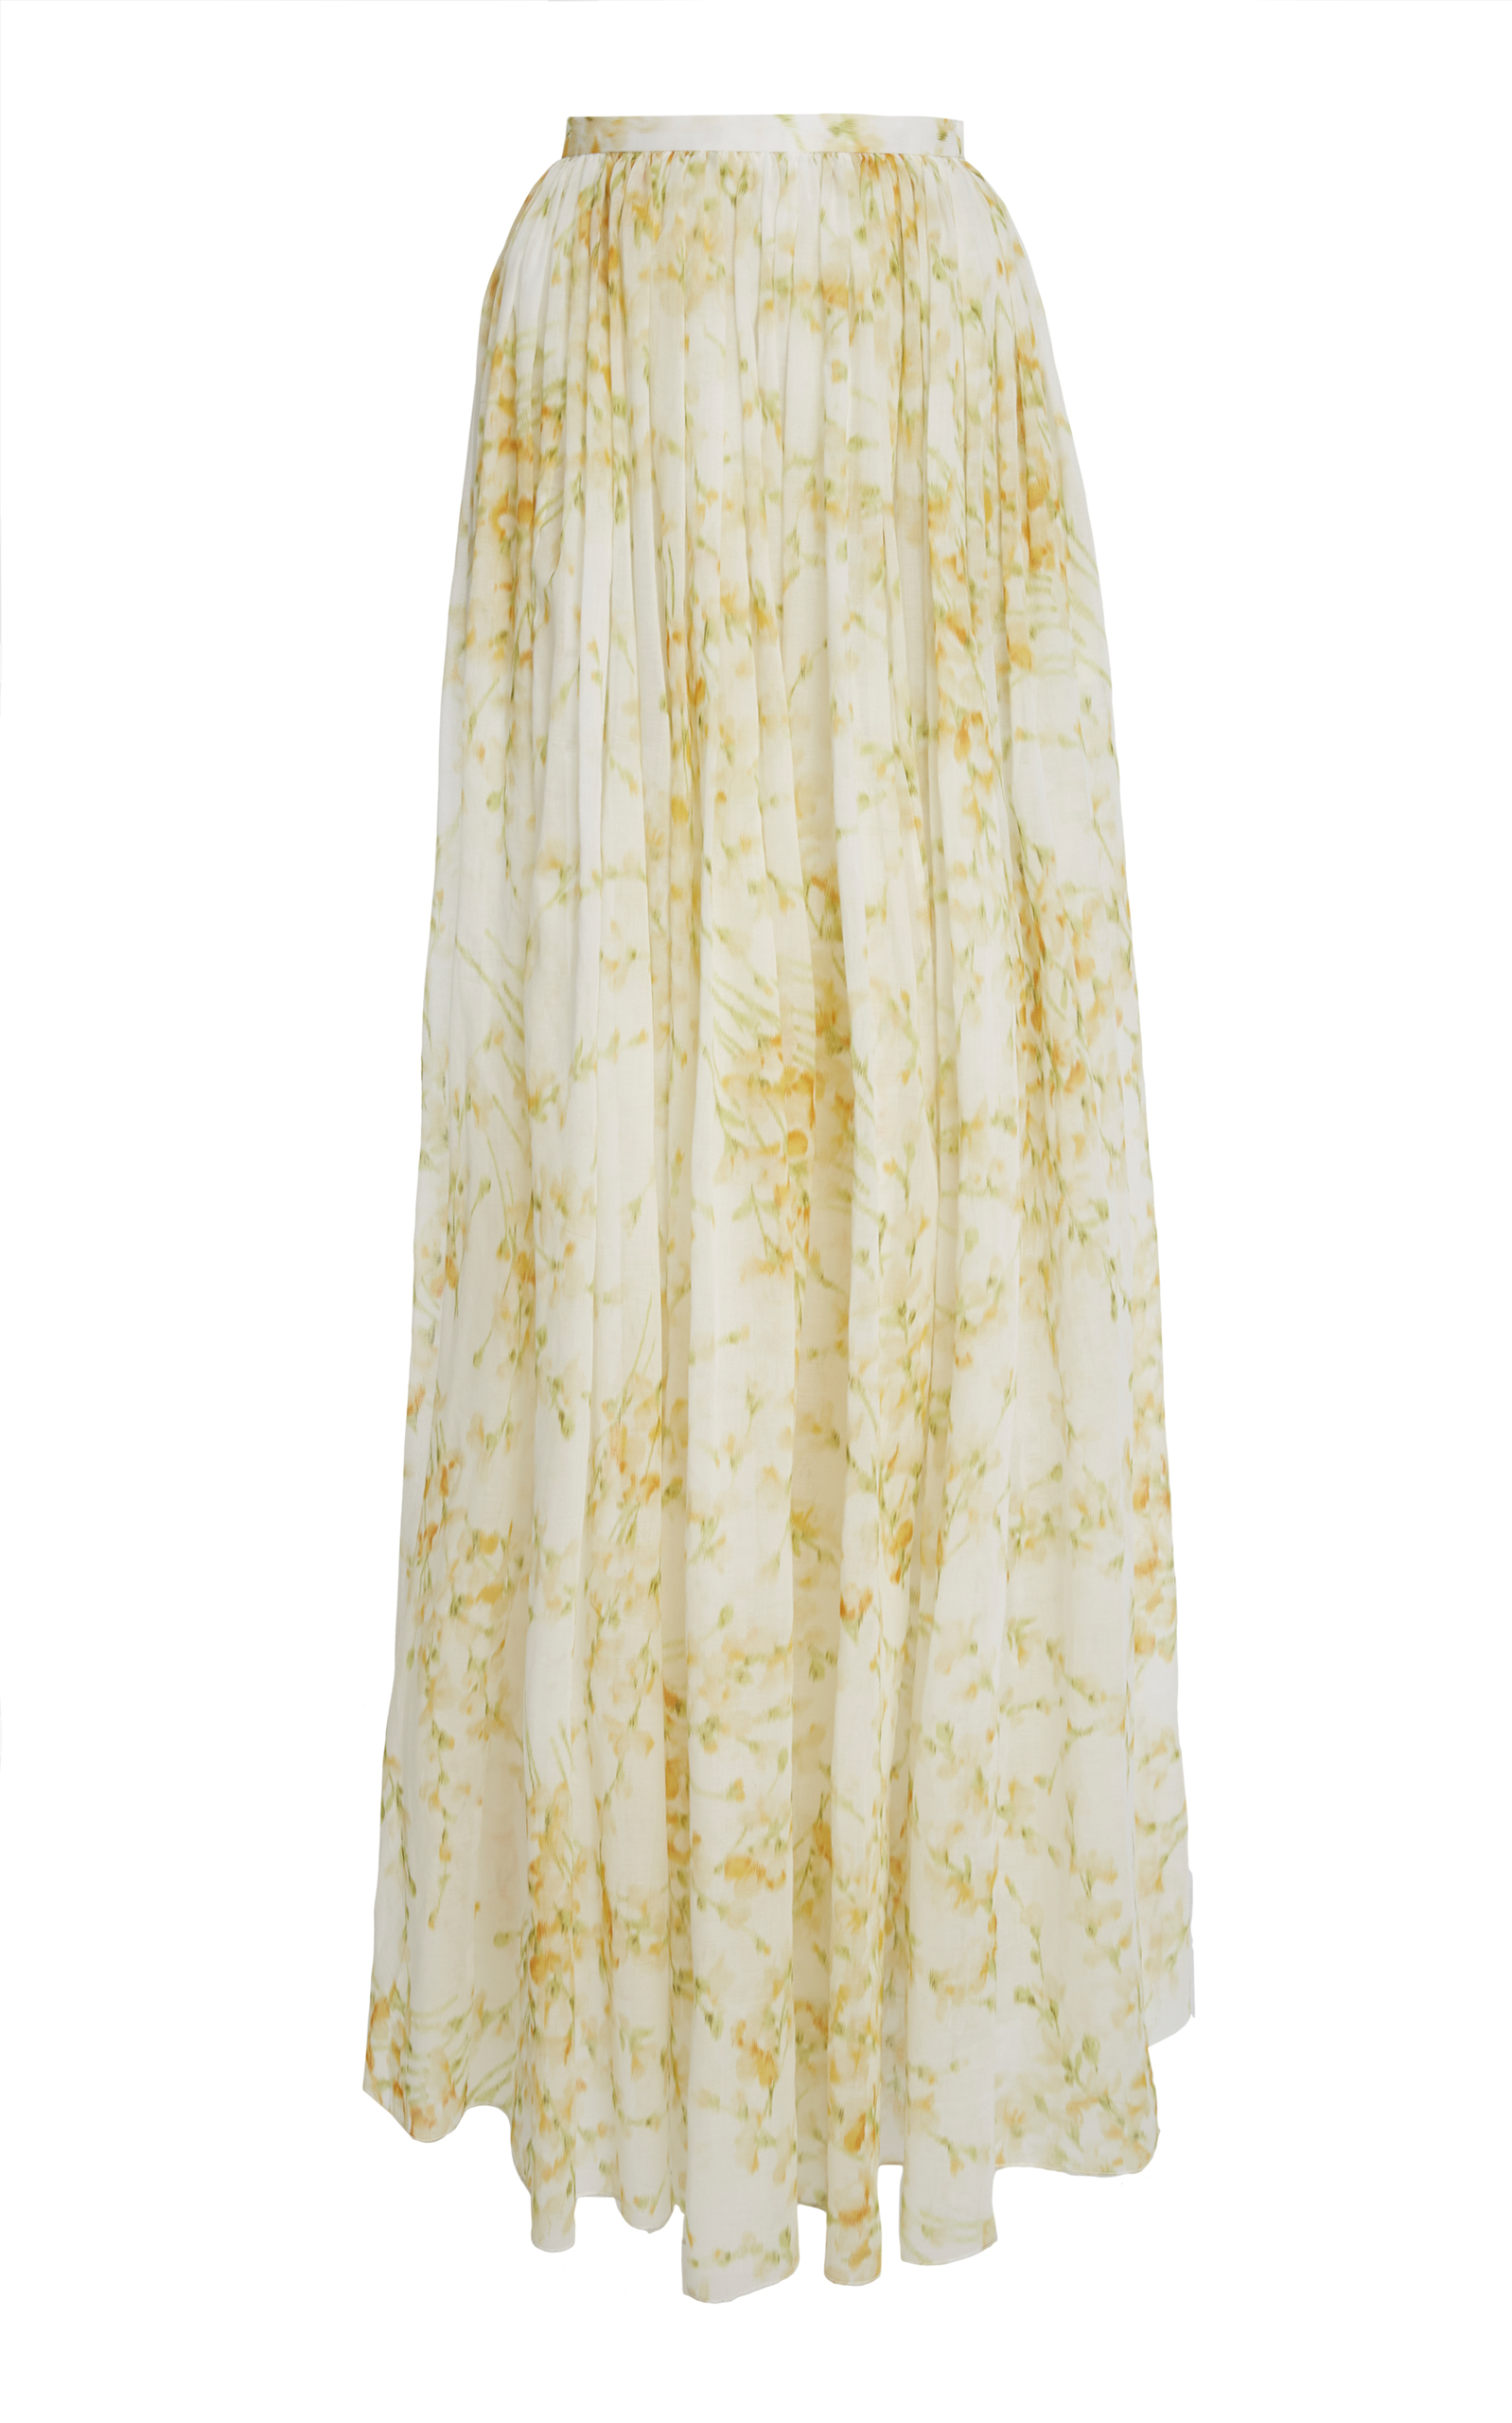 Sade A-Line Cotton Skirt by Brock Collection | Moda Operandi